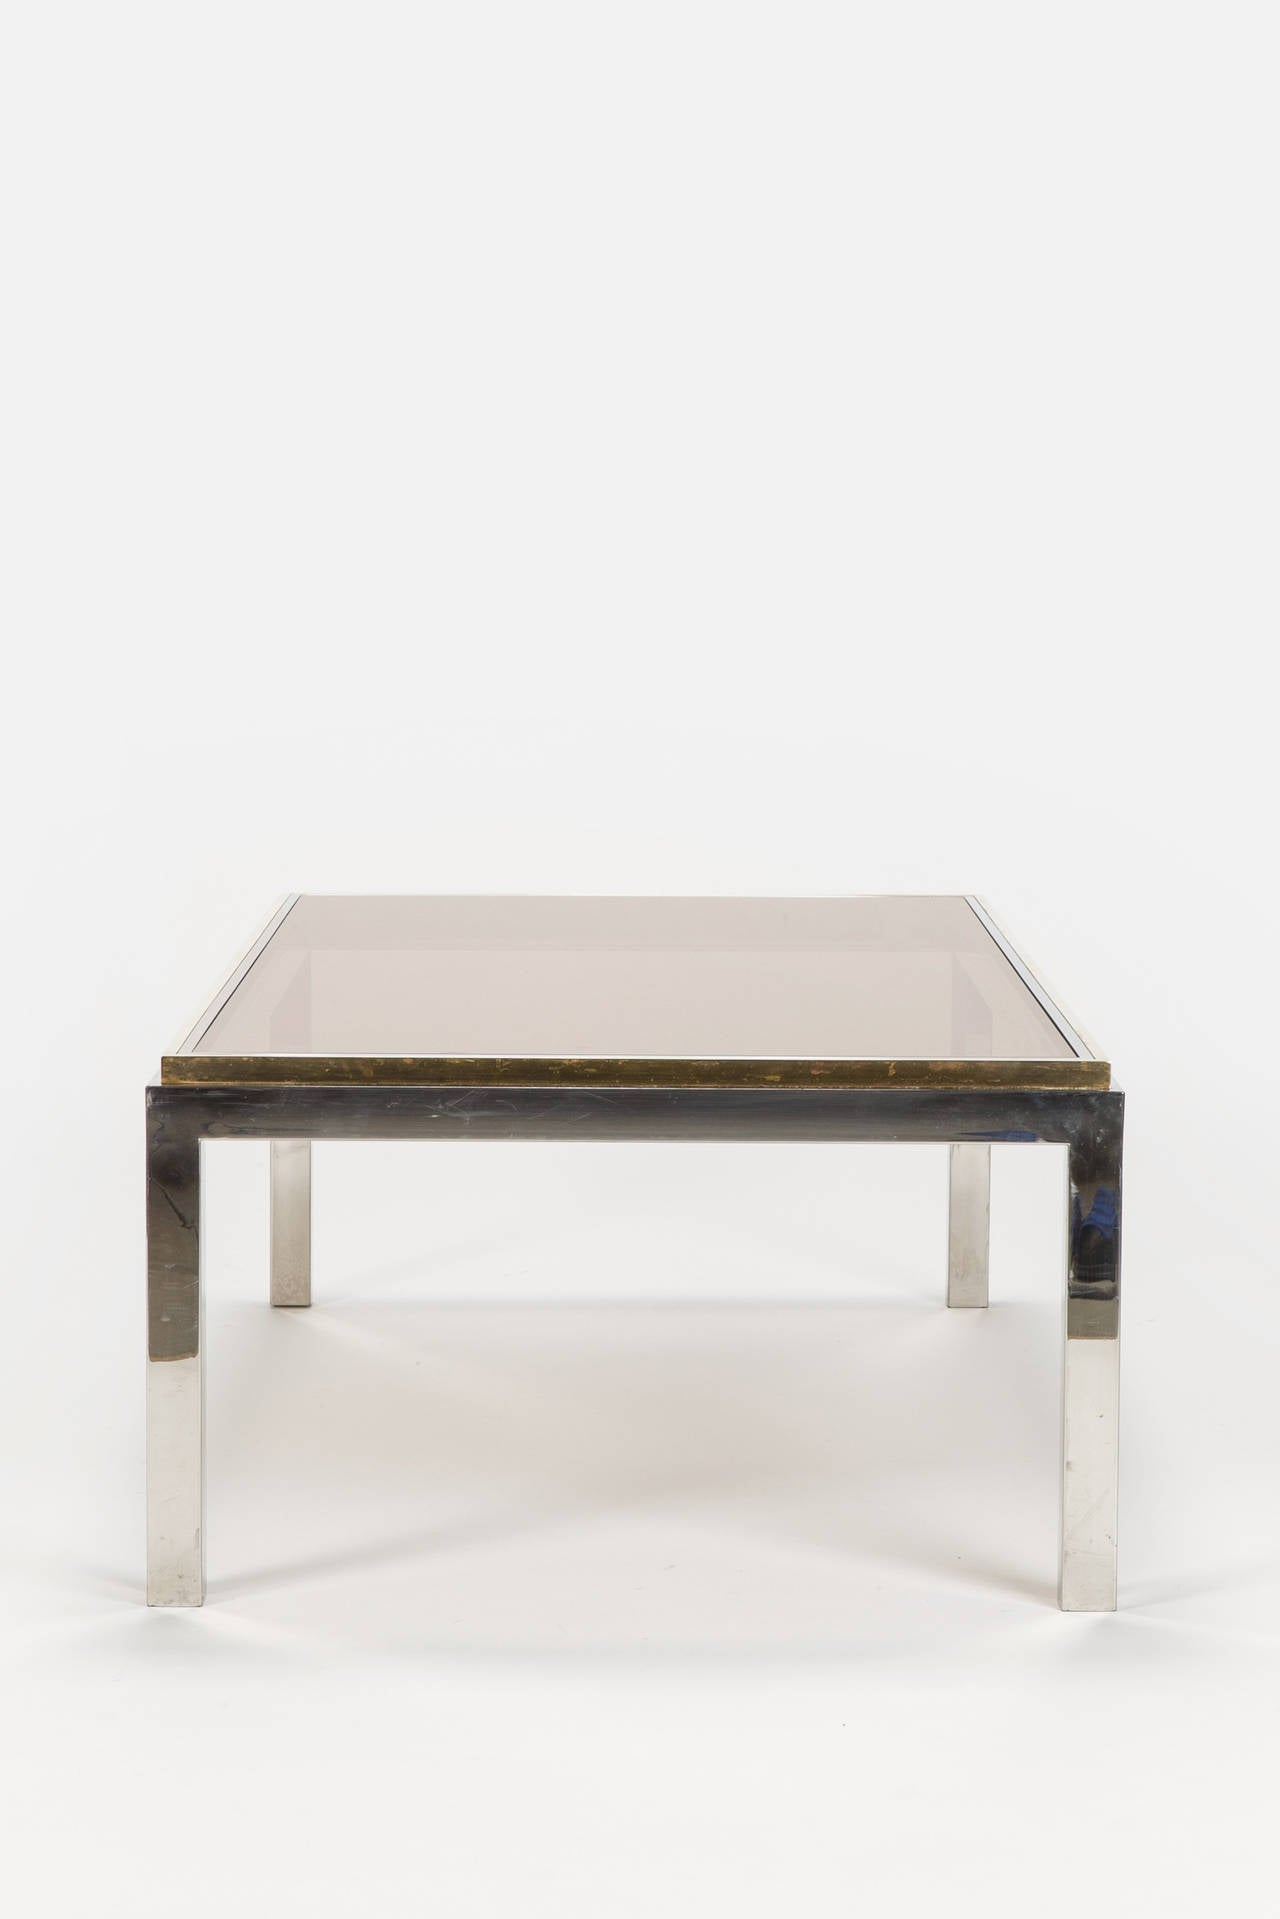 Flaminia Coffee Table Chrome Brass Smoked Glass By Willy Rizzo At 1stdibs